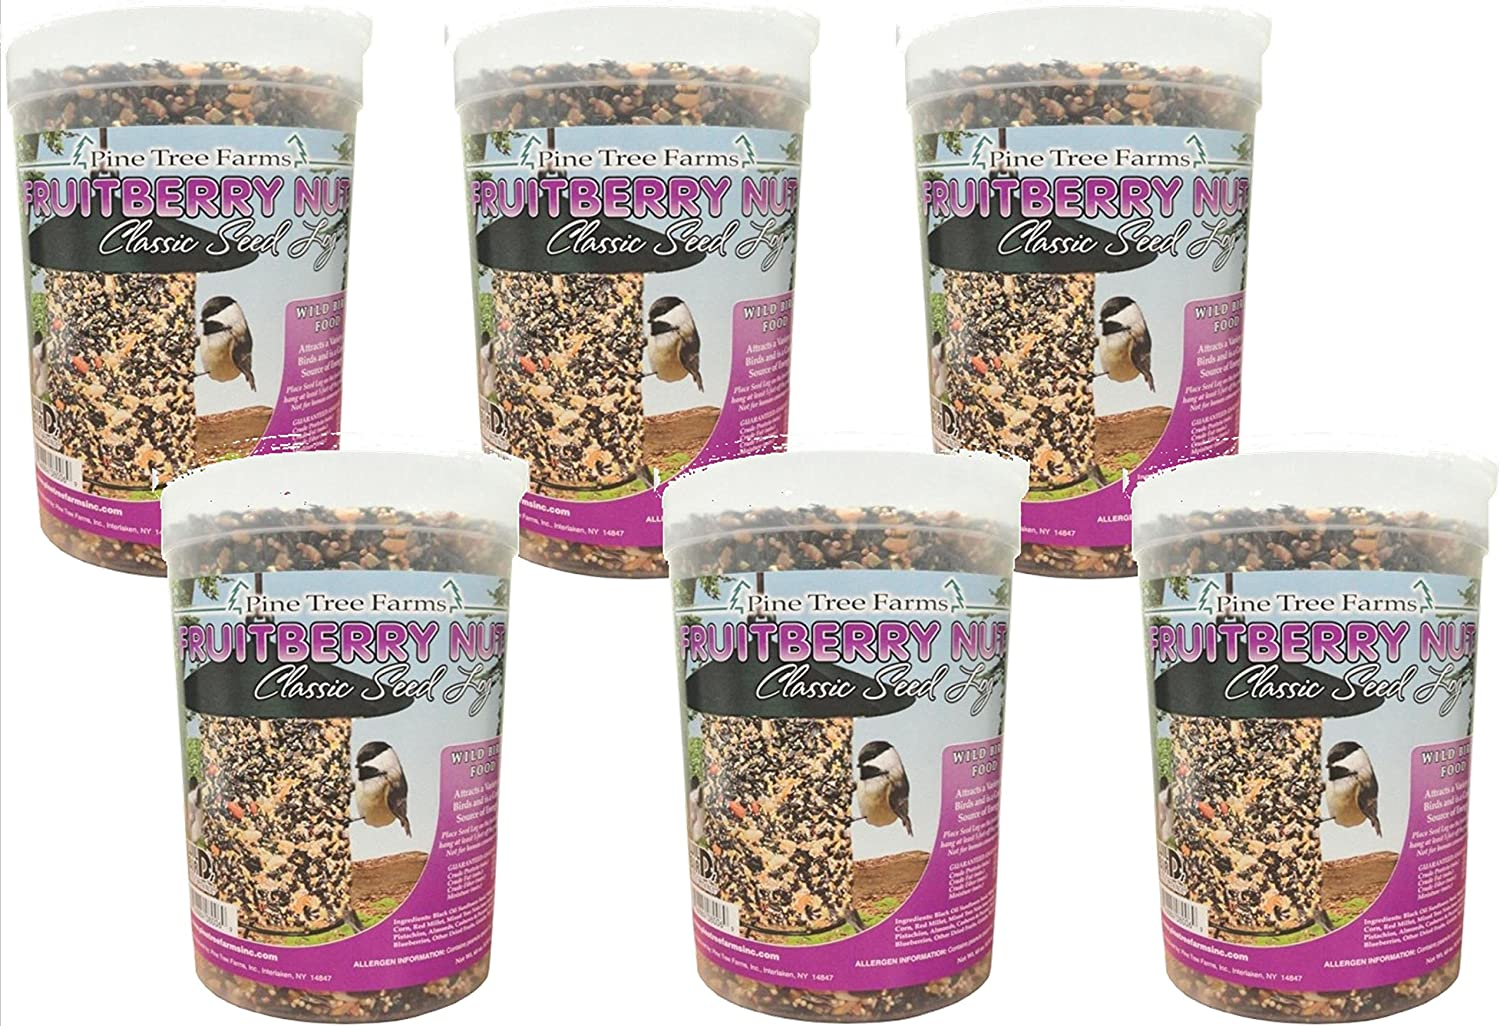 6 Pack - Pine Tree Farms 68 Ounce Fruit Berry Nut Classic Seed Log 8006 Made in USA